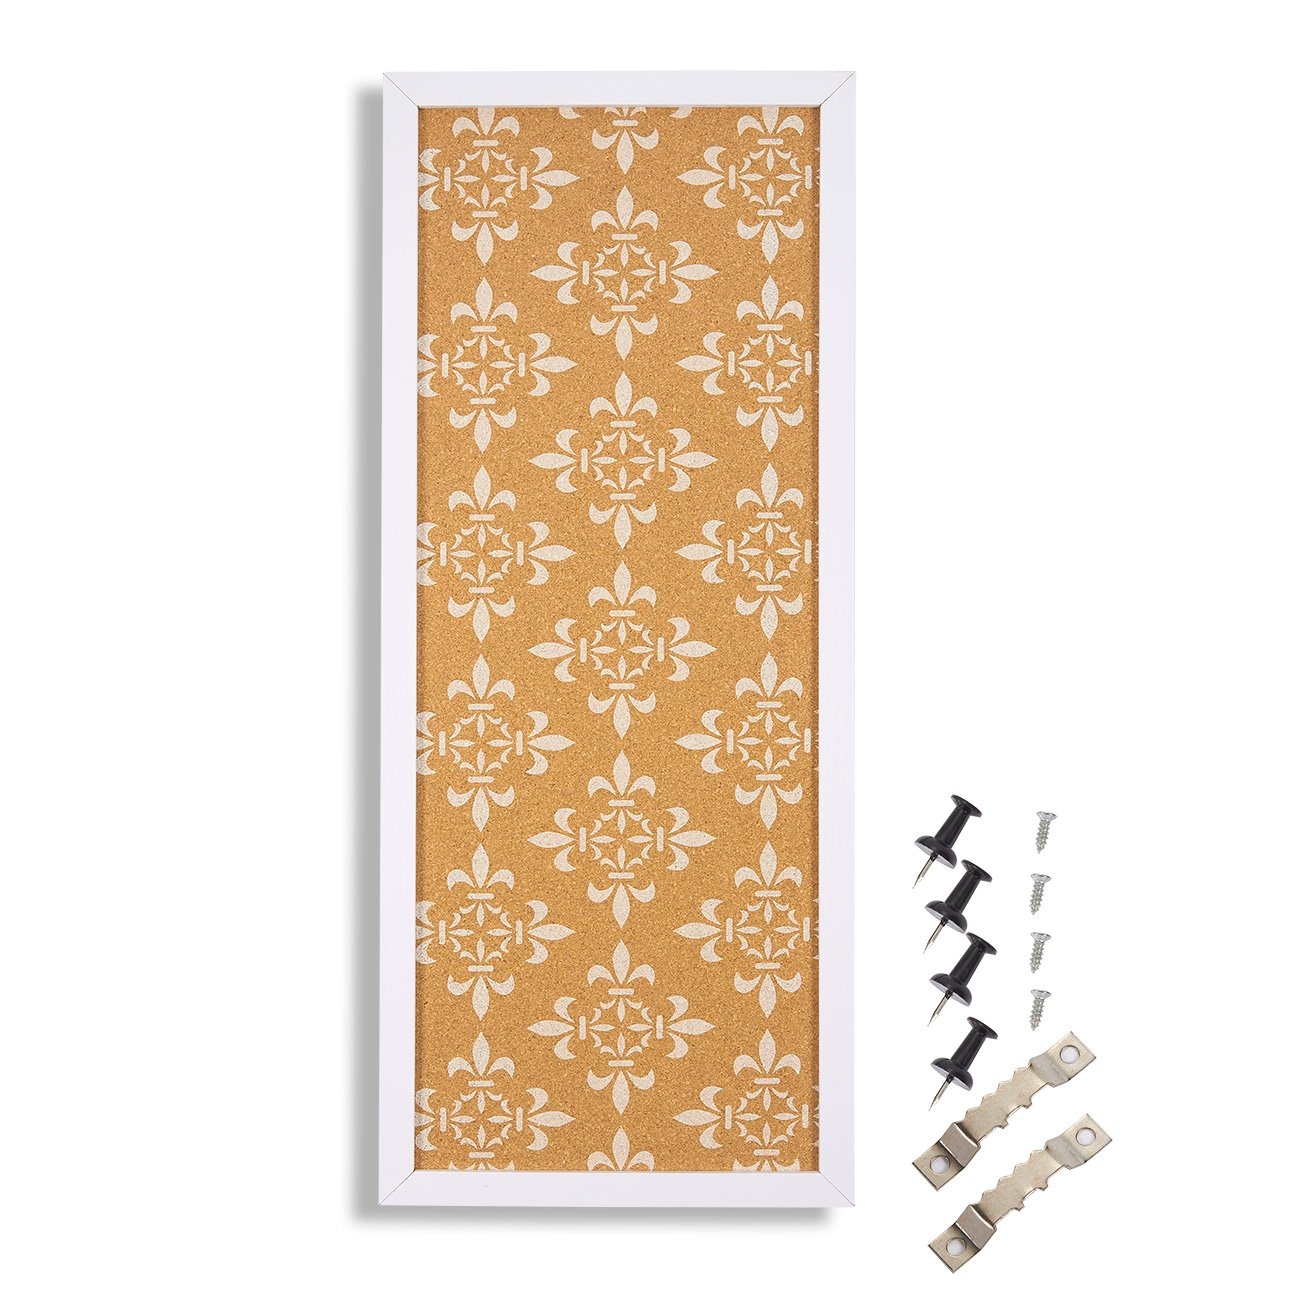 23.7 x 9.7 x 0.6 Inches Perfect for Pinning Memos and Reminders Cork Bulletin Board Decorative Framed Corkboard Wall D/écor with White Floral Print